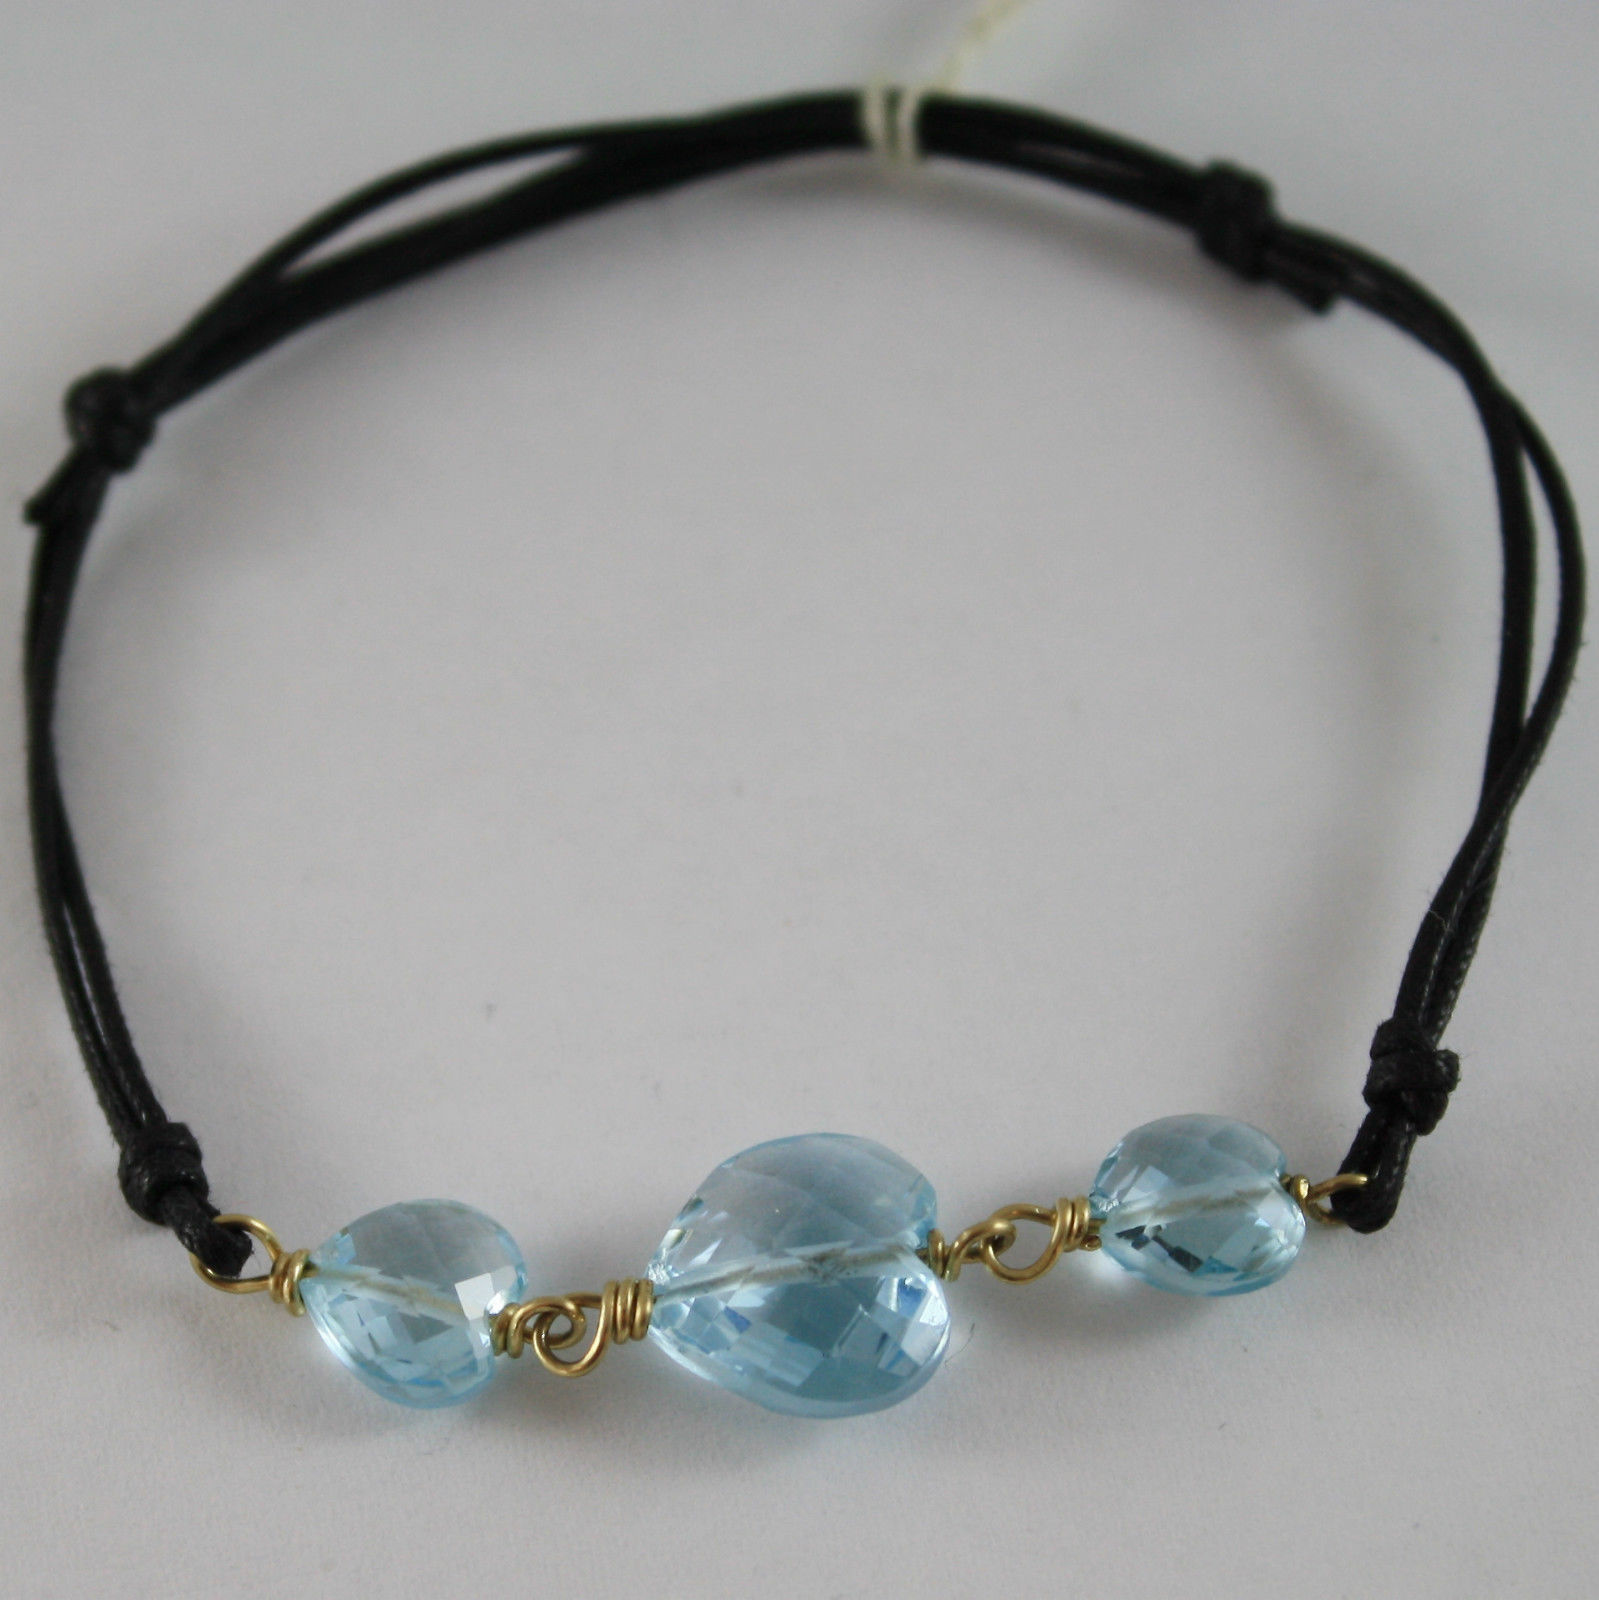 SOLID 18K YELLOW GOLD BRACELET WITH HEART FACETED BLUE TOPAZ, MADE IN ITALY